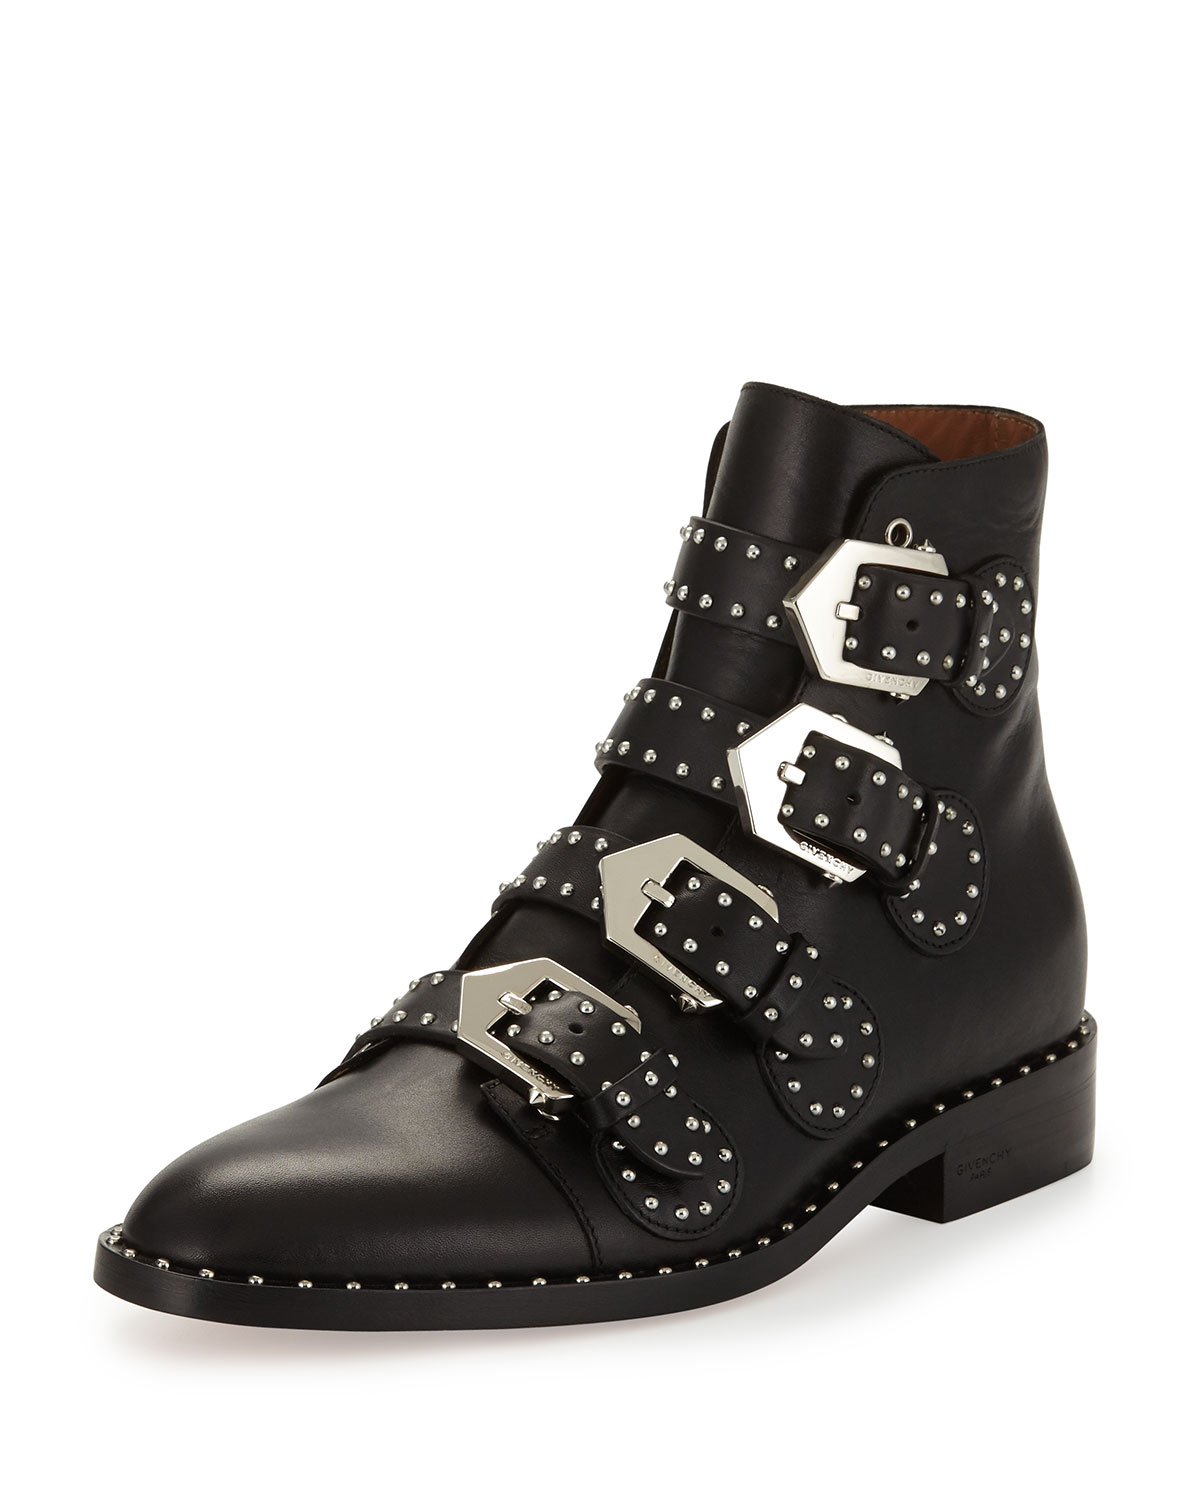 a760fd51b2ac Givenchy Studded Leather Ankle Boot